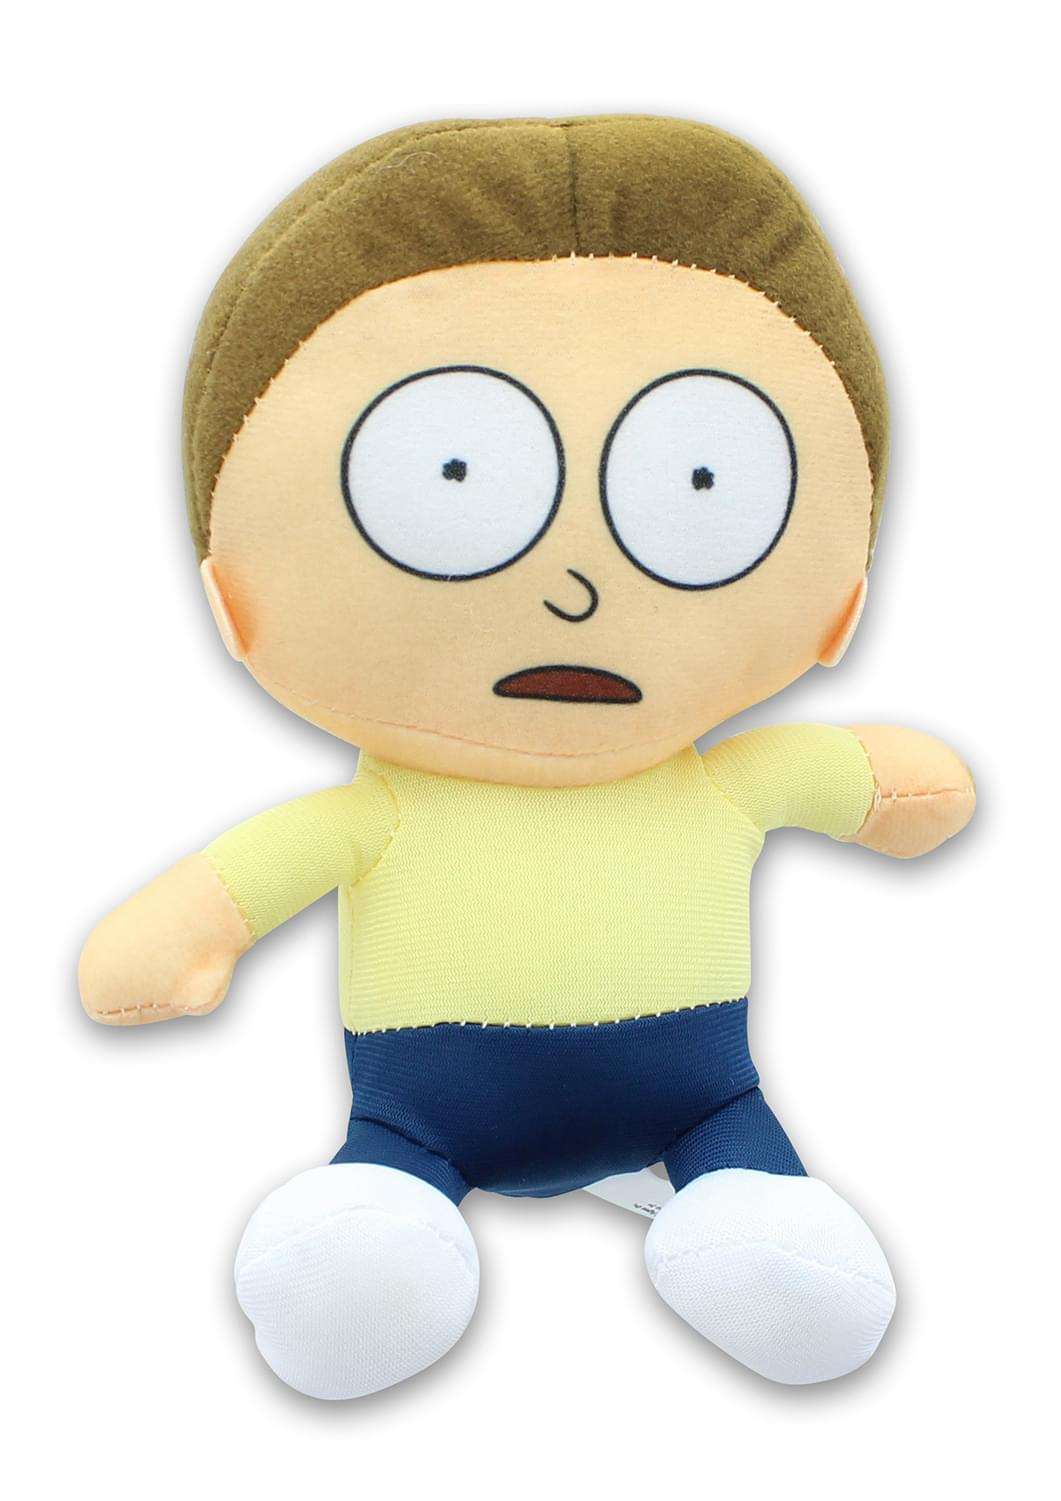 Rick & Morty 8 Inch Stuffed Character Plush | Morty